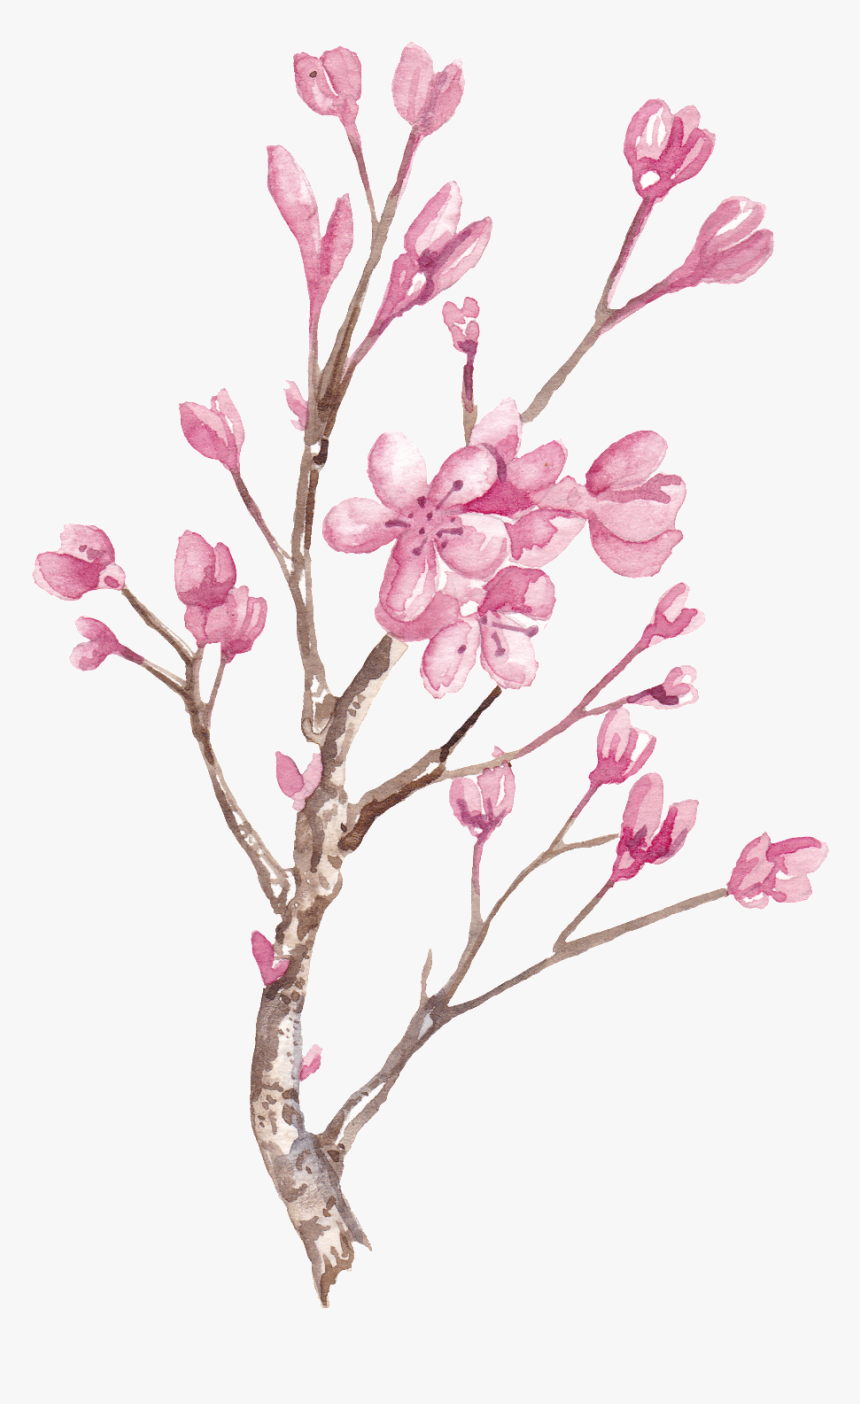 Hand Painted Winter Plum Blossom Branch Png Transparent - Painting Winter Plum Blossom, Png Download, Free Download